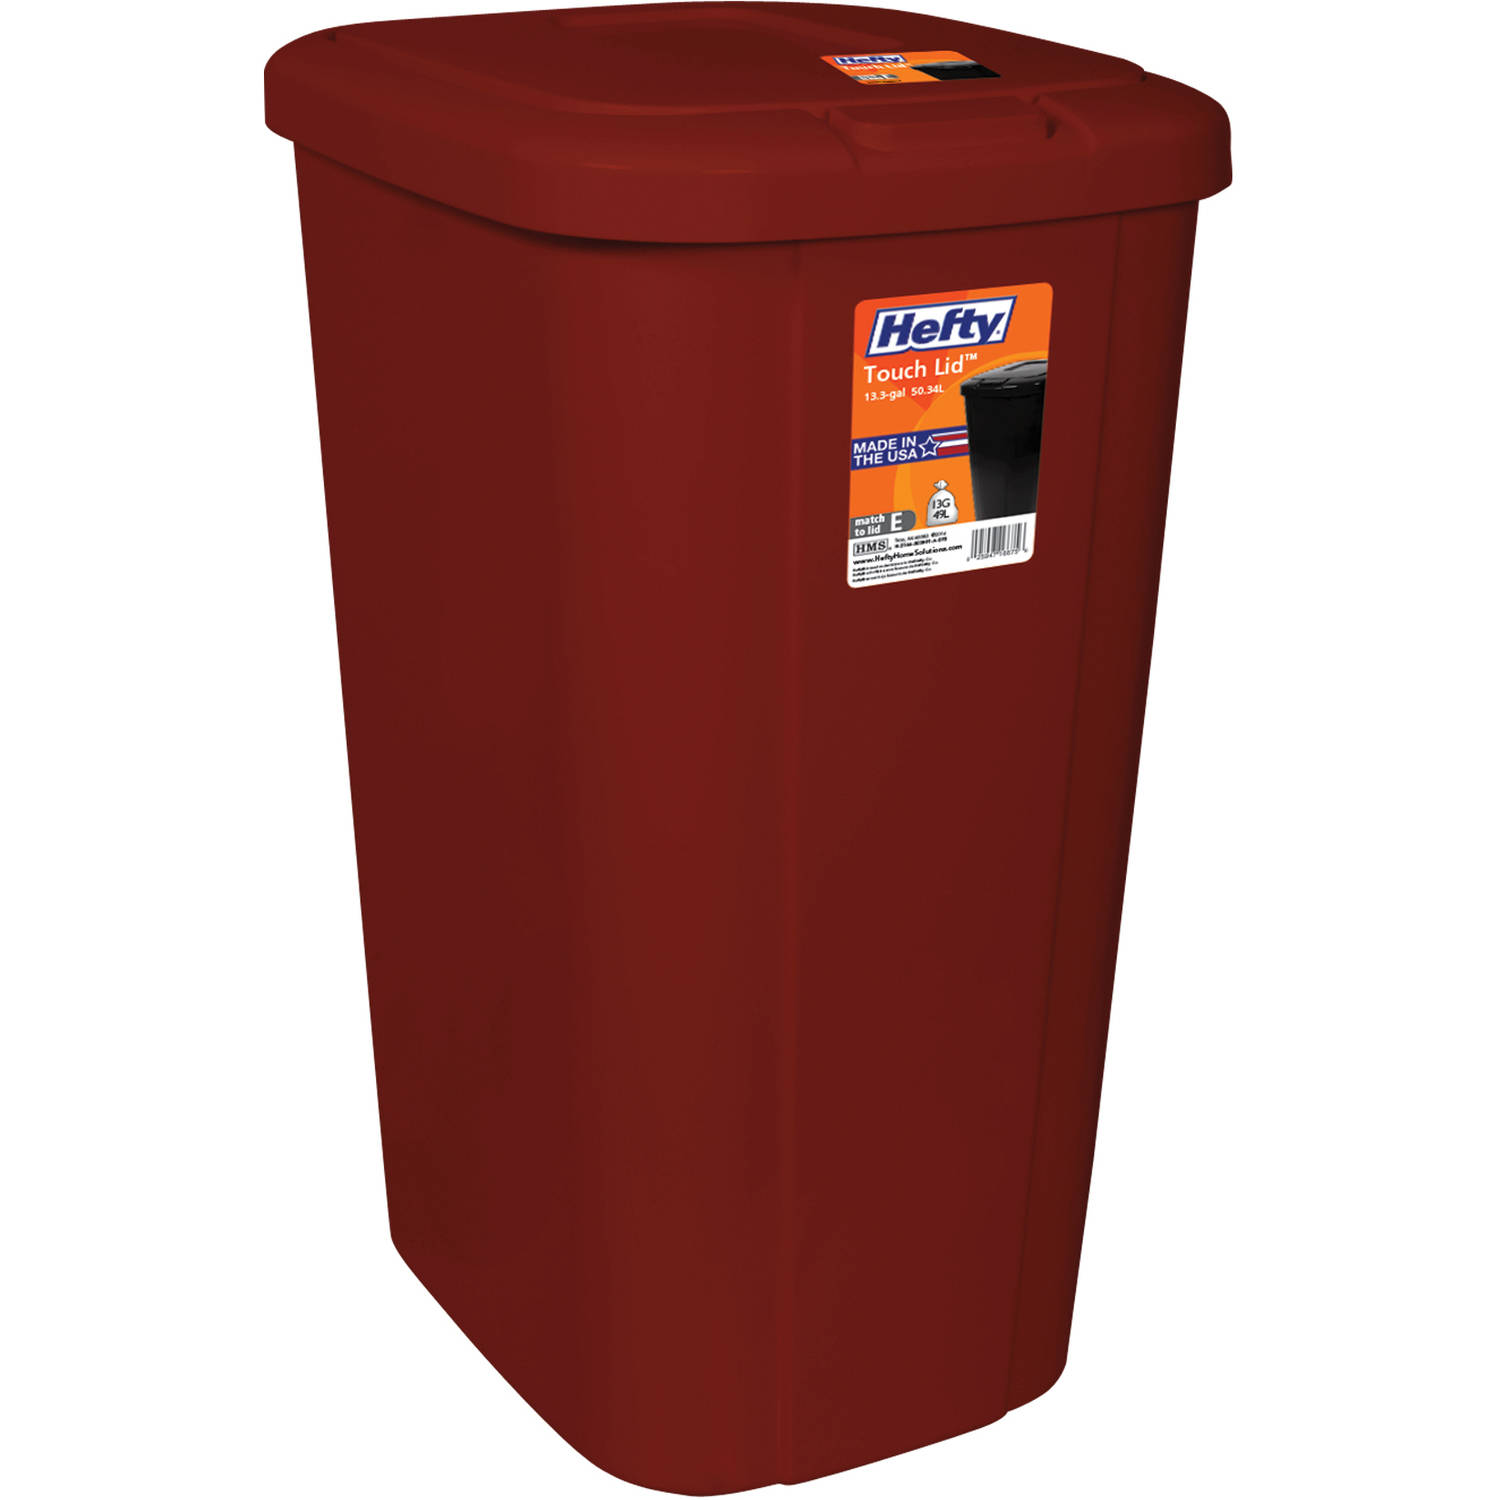 Hefty Touch-Lid 13.3-Gallon Trash Can, Multiple Colors